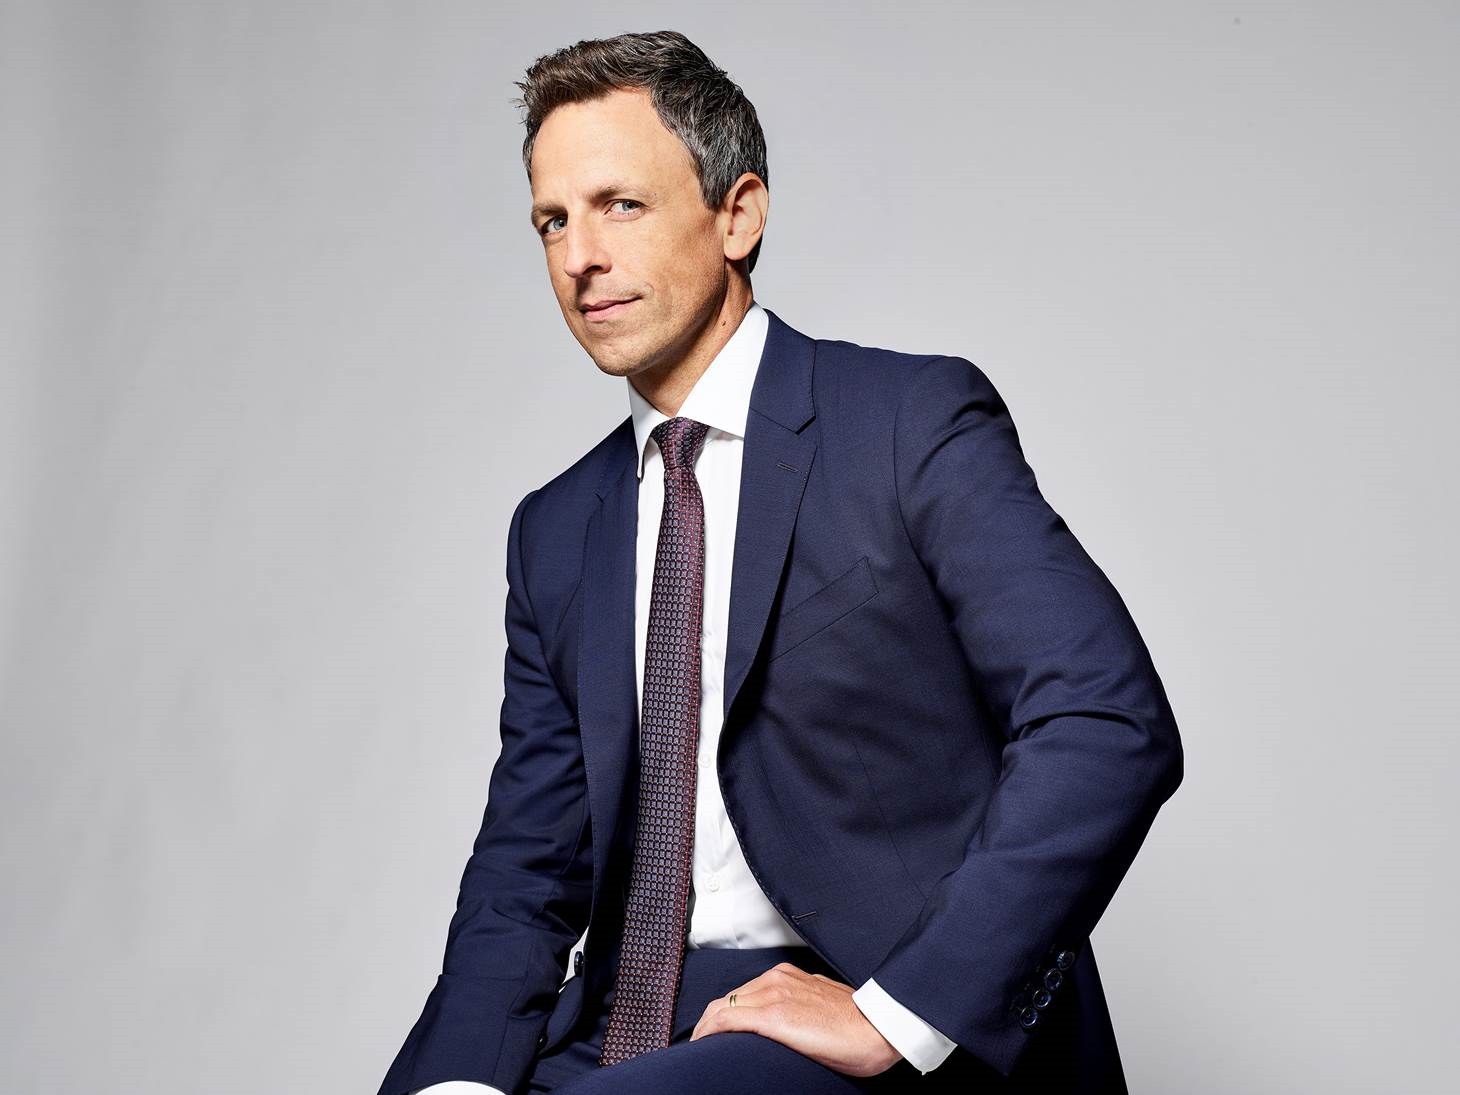 Seth Meyers. Photo courtesy of the JCC via the calendar.